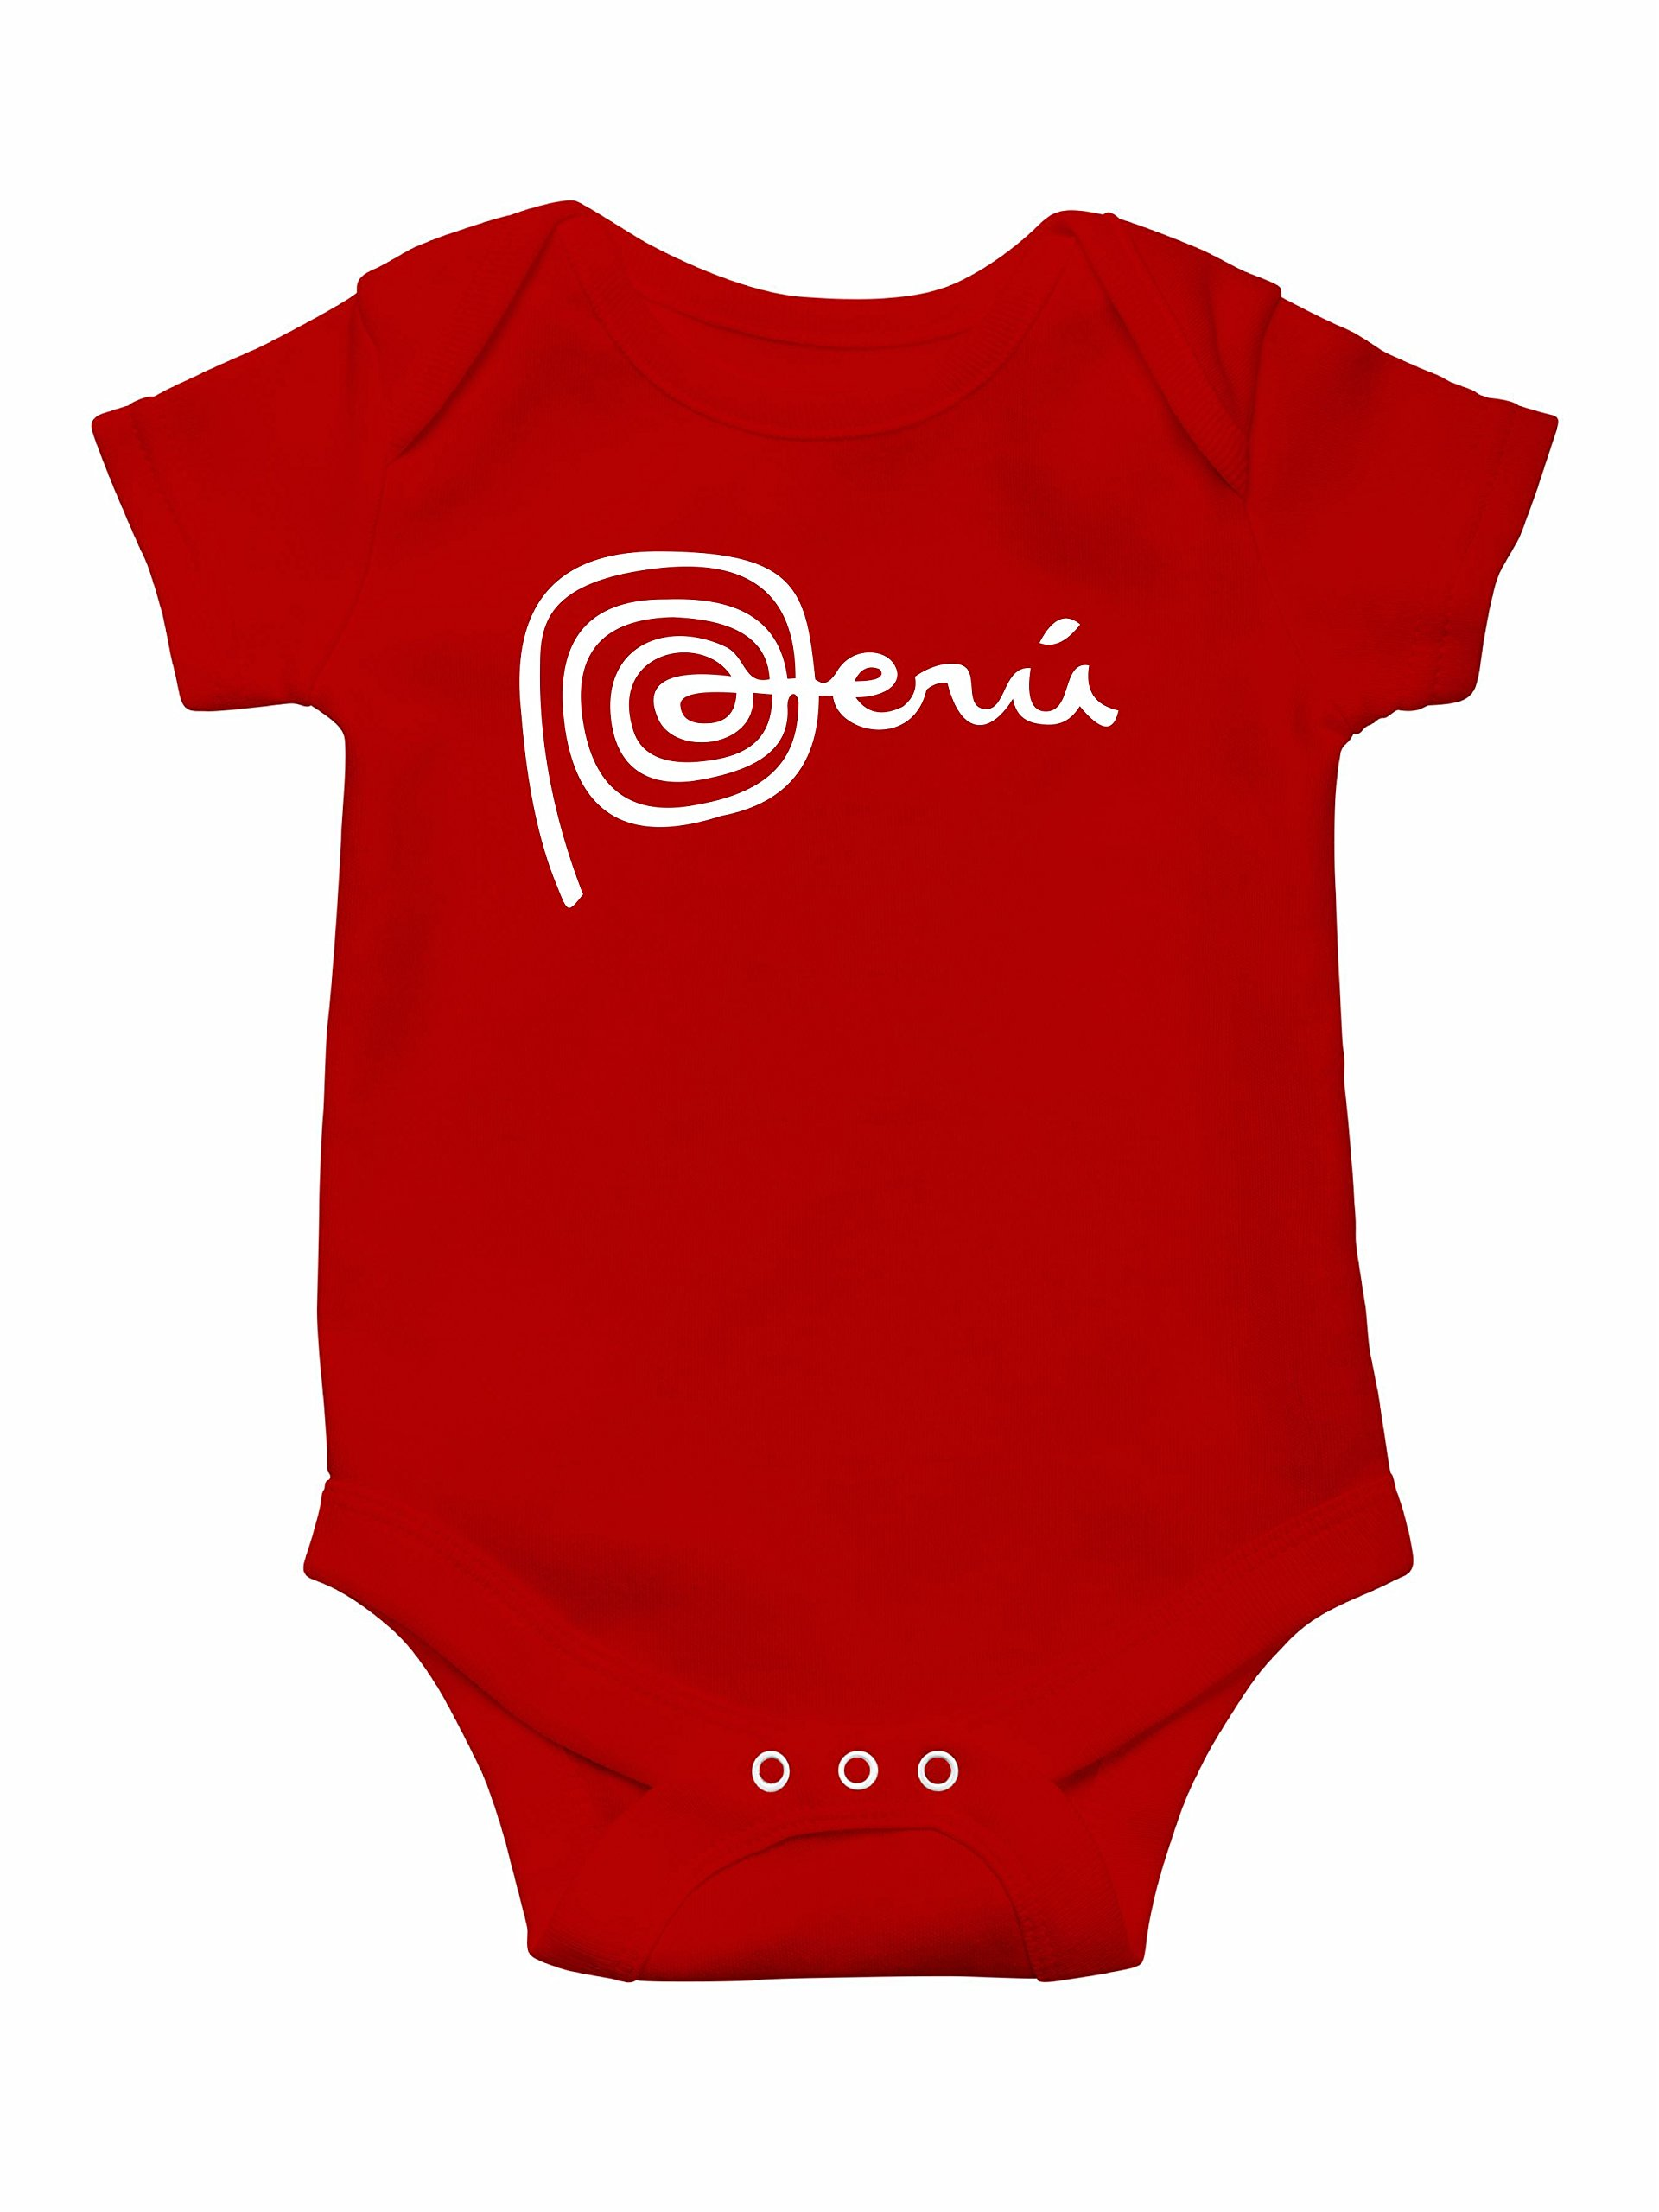 Hot4TShirts Marca Peru Creeper Bodysuit for Babies (6 Months, Red)